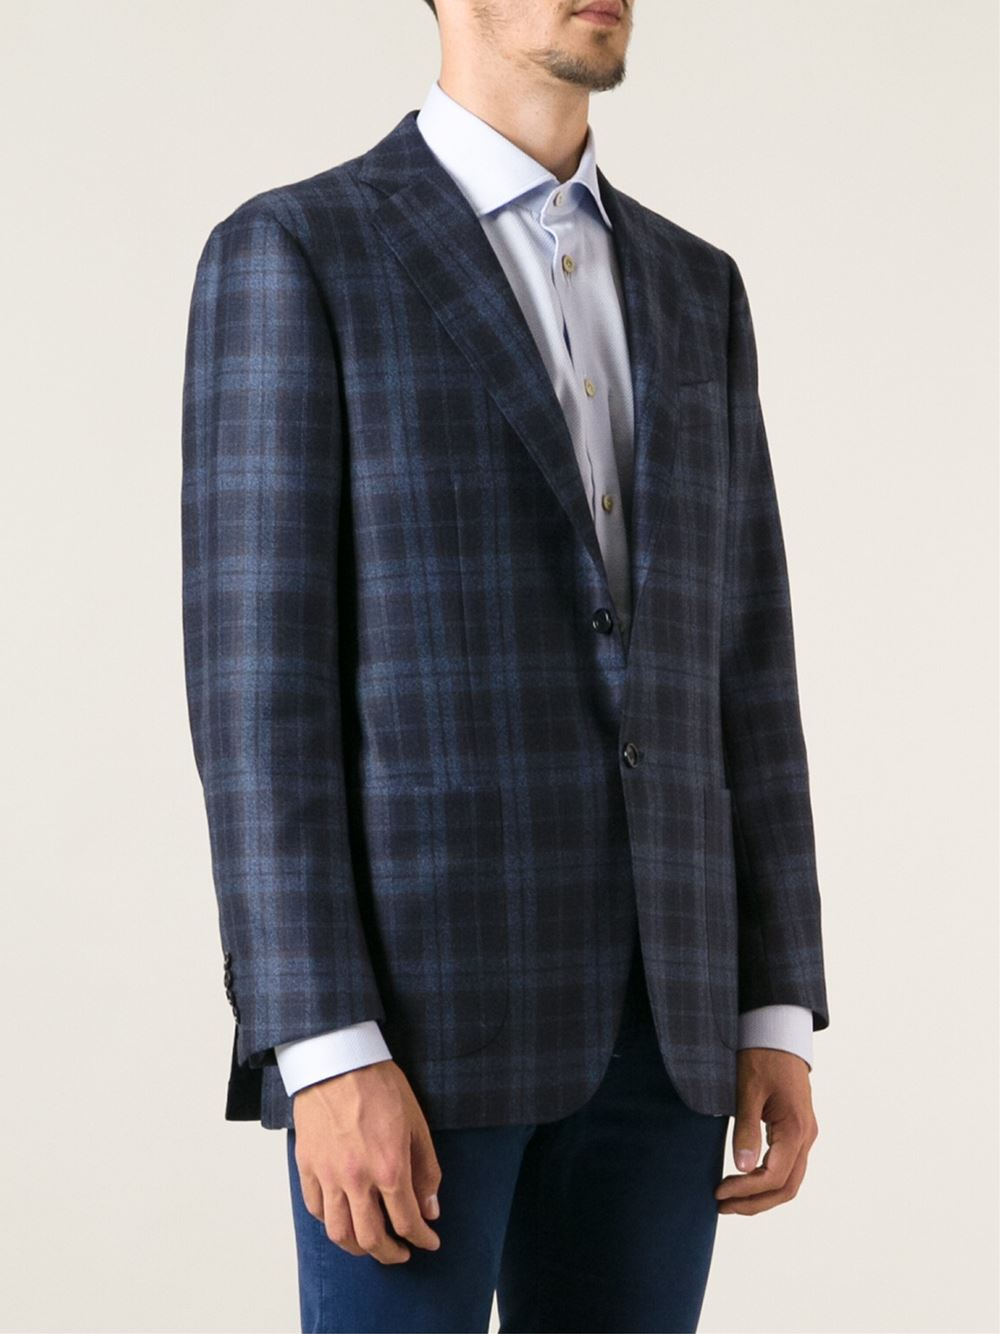 Kiton Checked Jacket in Blue for Men